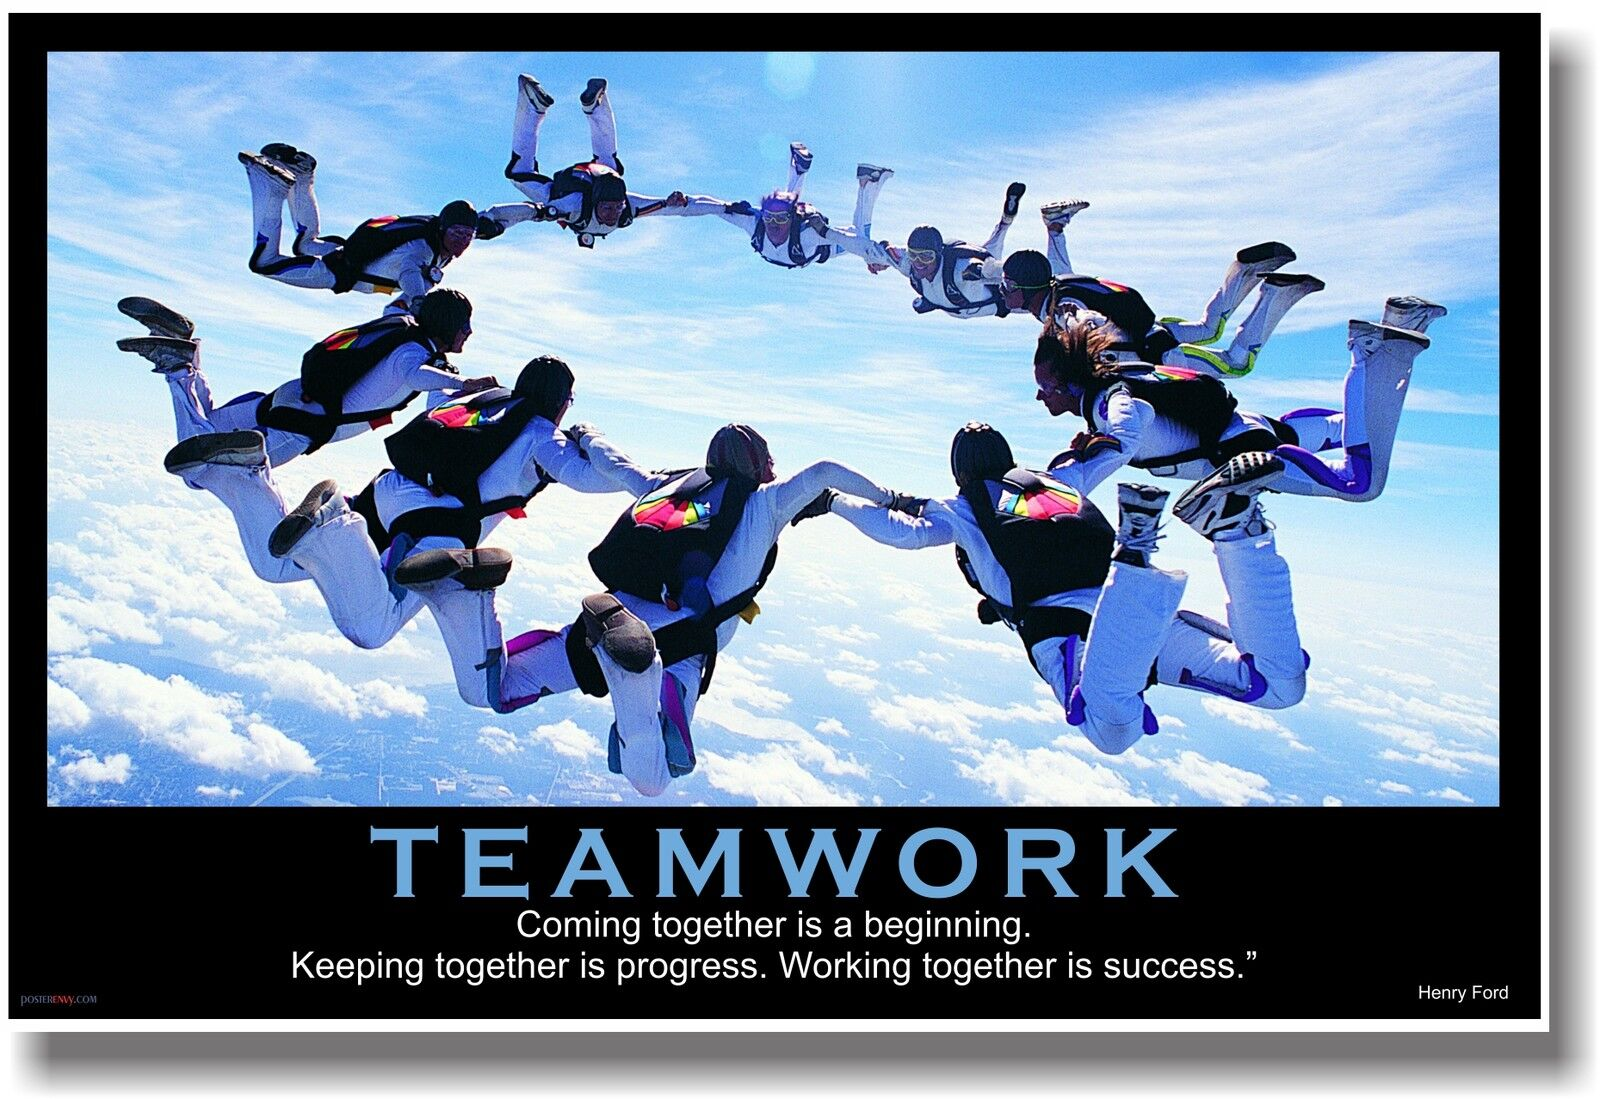 NEW Motivational TEAMWORK POSTER - Henry Ford Quote - Sports Sky ...